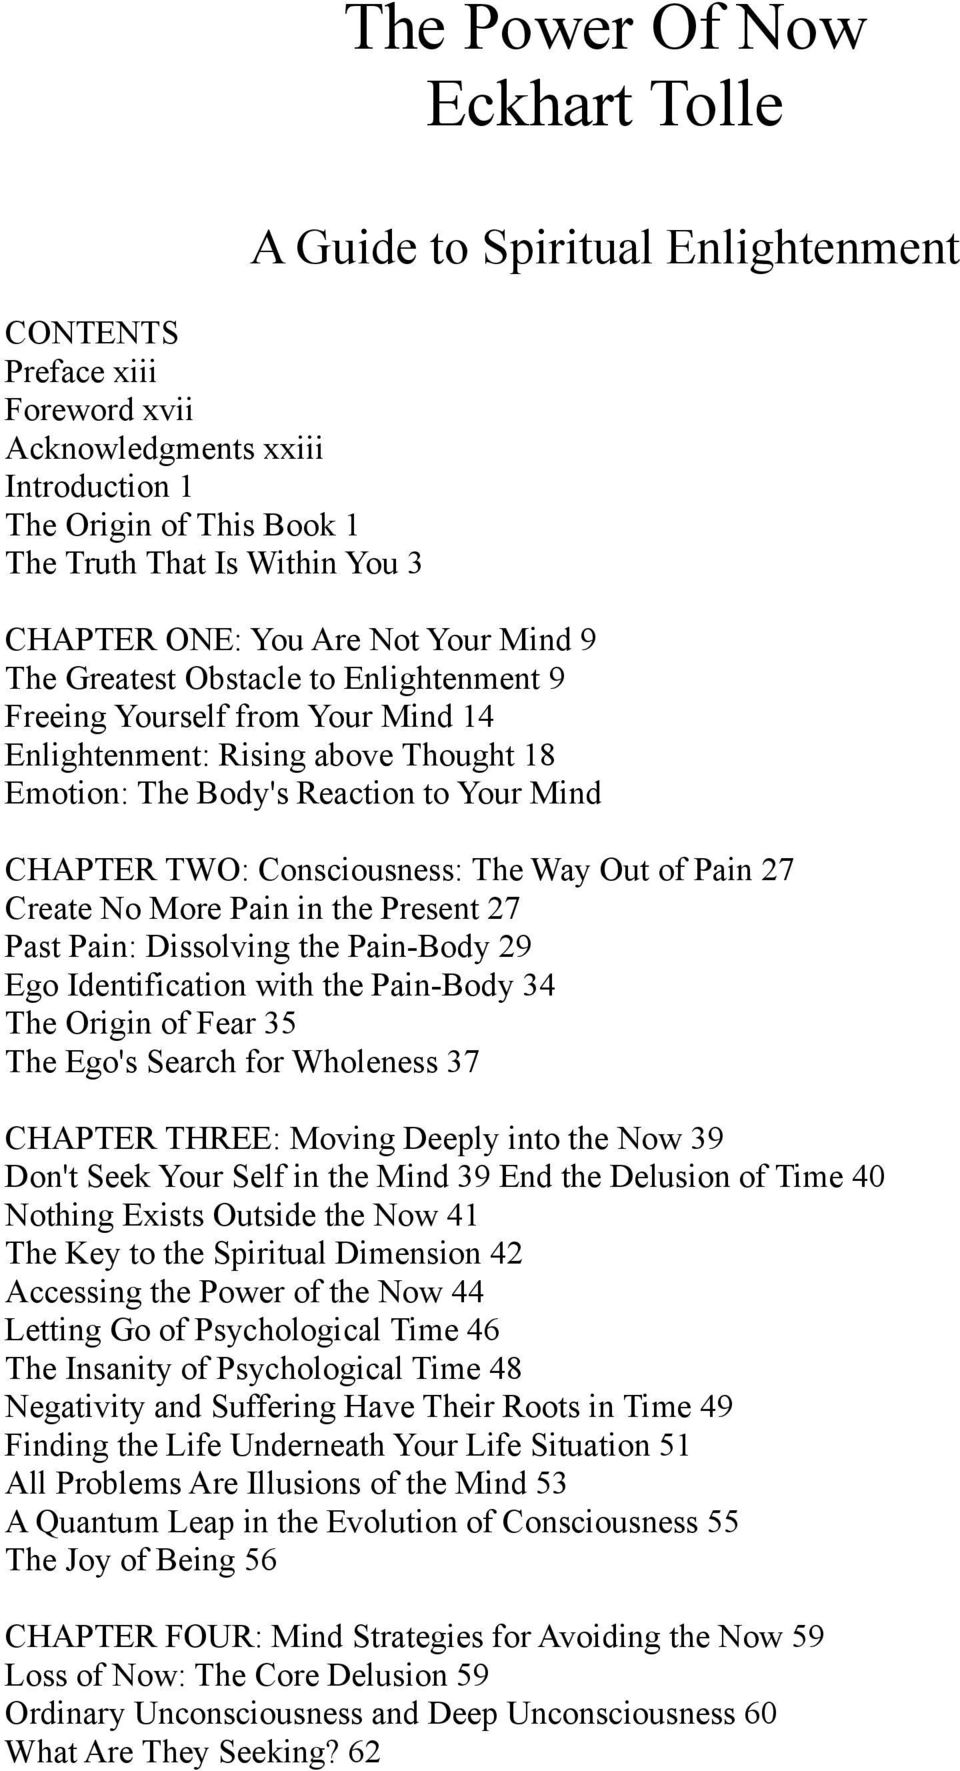 CHAPTER TWO: Consciousness: The Way Out of Pain 27 Create No More Pain in the Present 27 Past Pain: Dissolving the Pain-Body 29 Ego Identification with the Pain-Body 34 The Origin of Fear 35 The